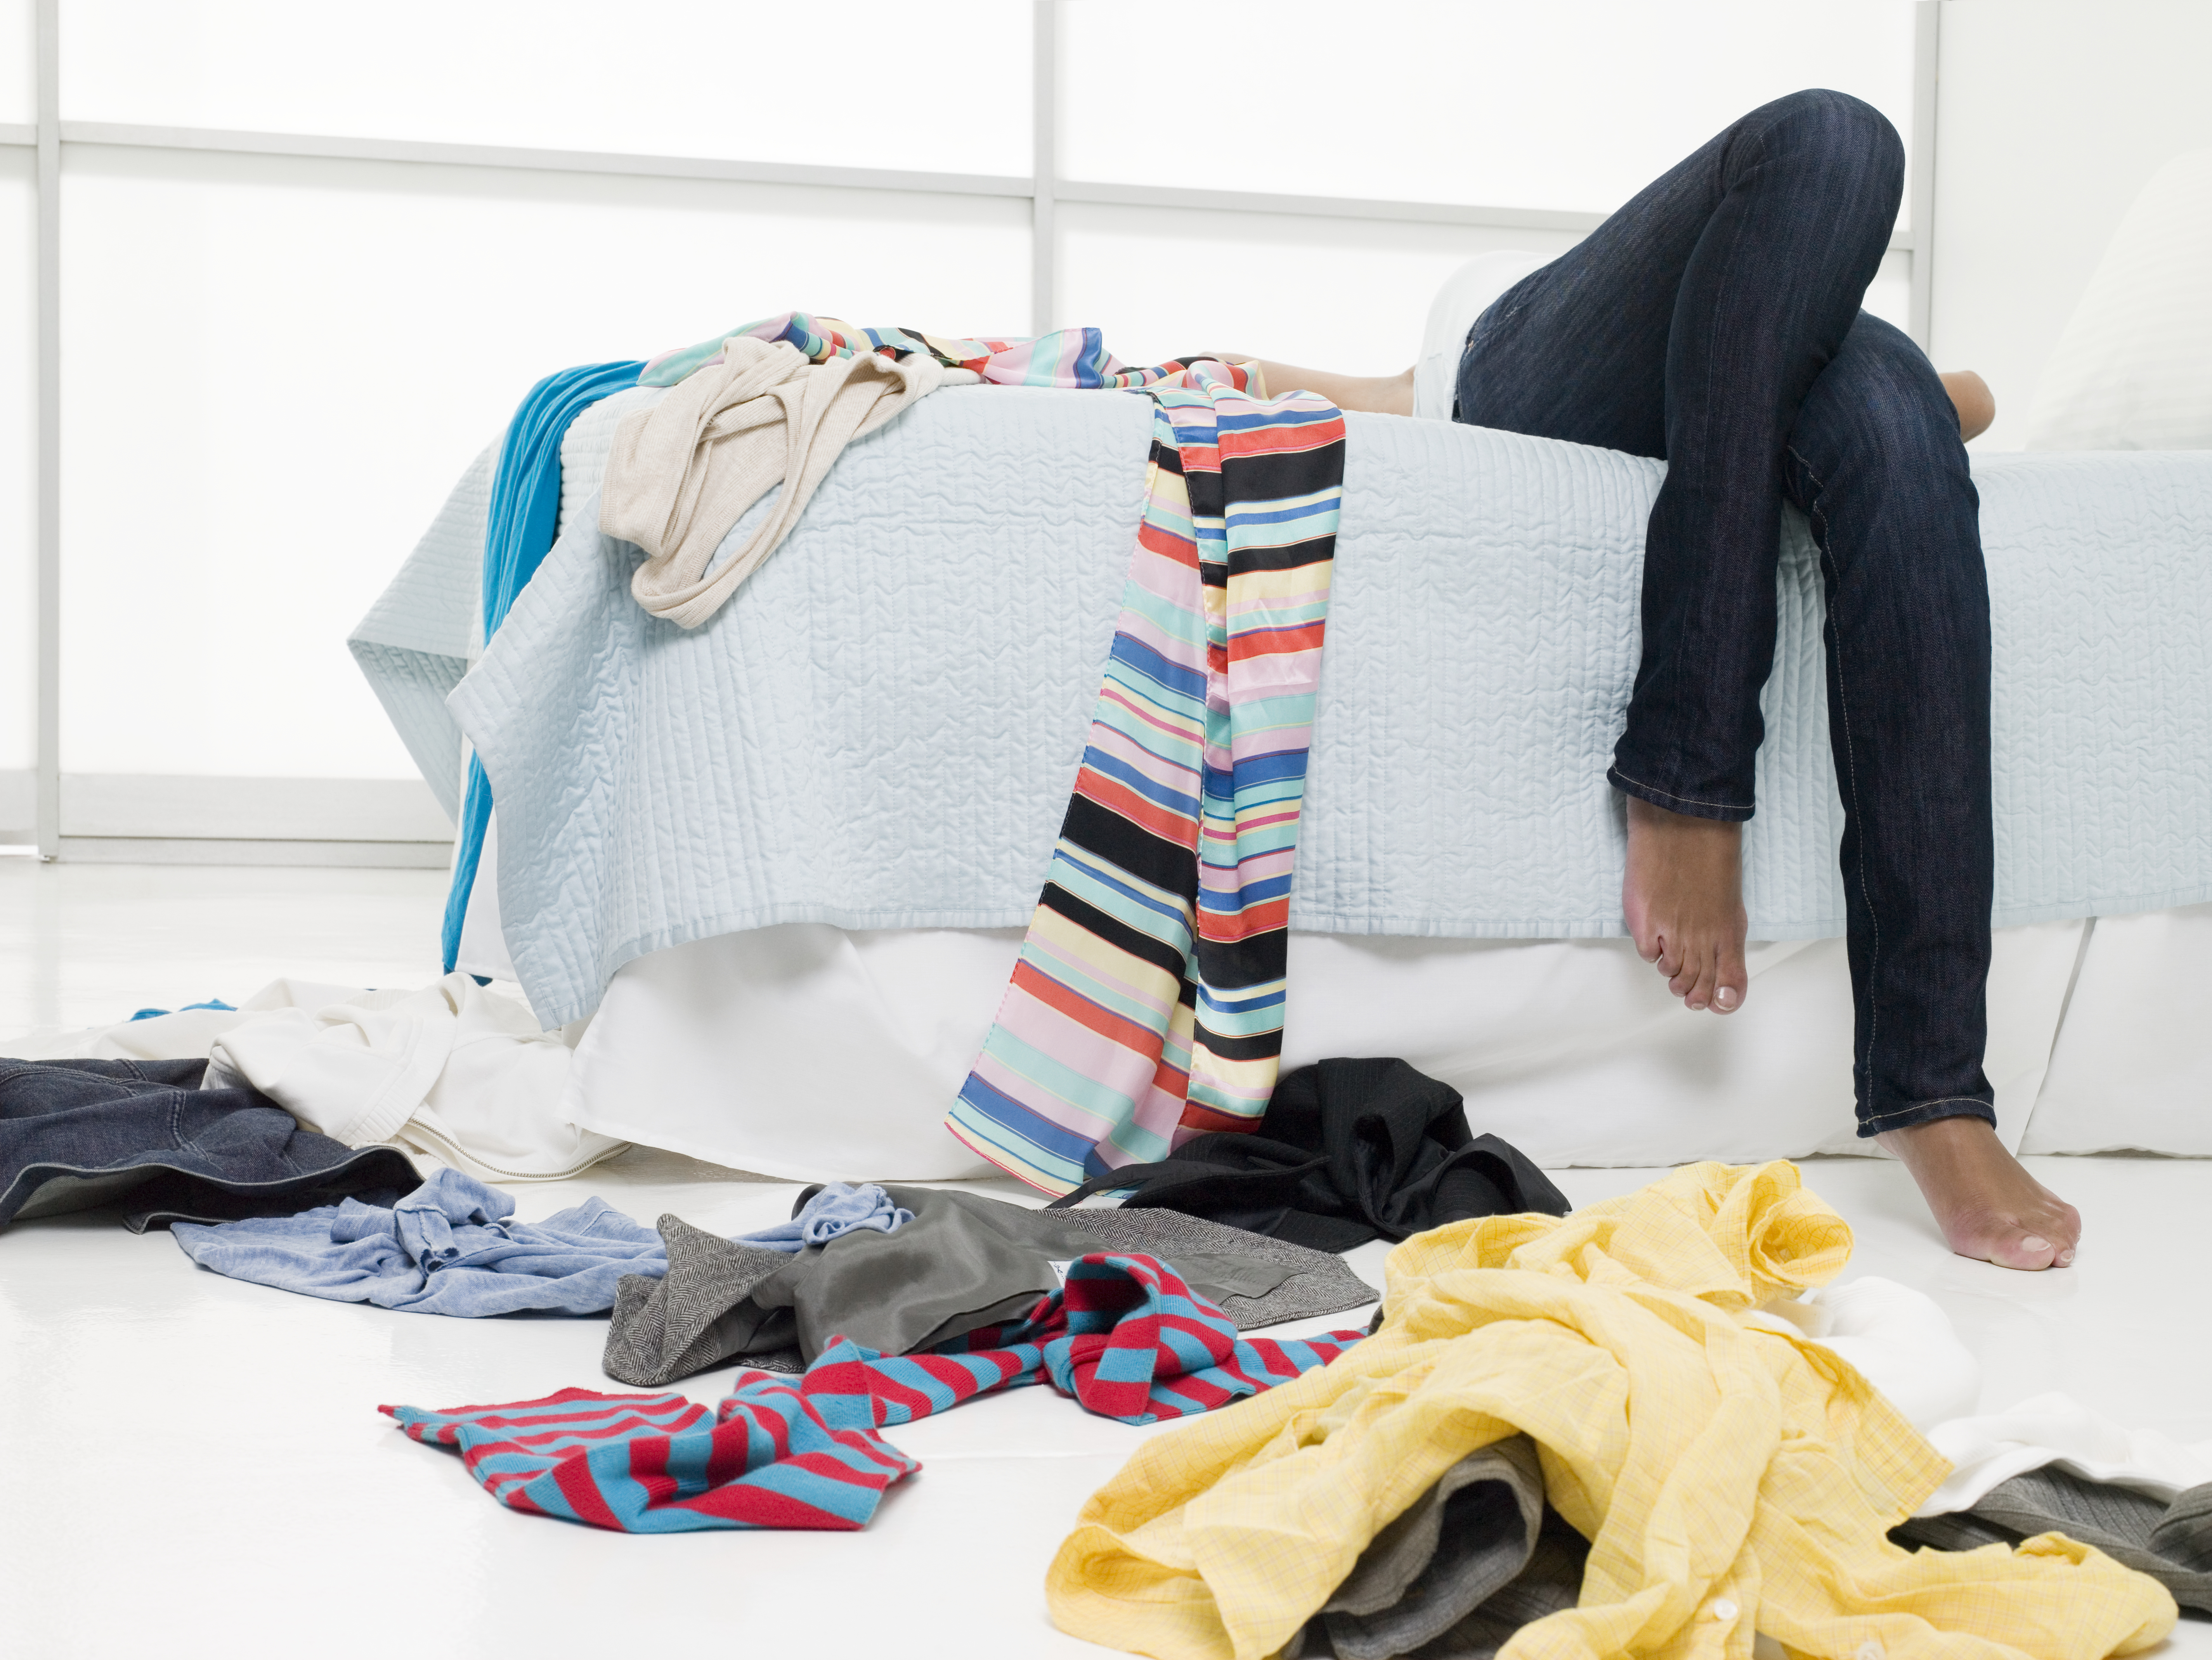 A person lays back on their bed with a mess of clothes around them and on the floor.